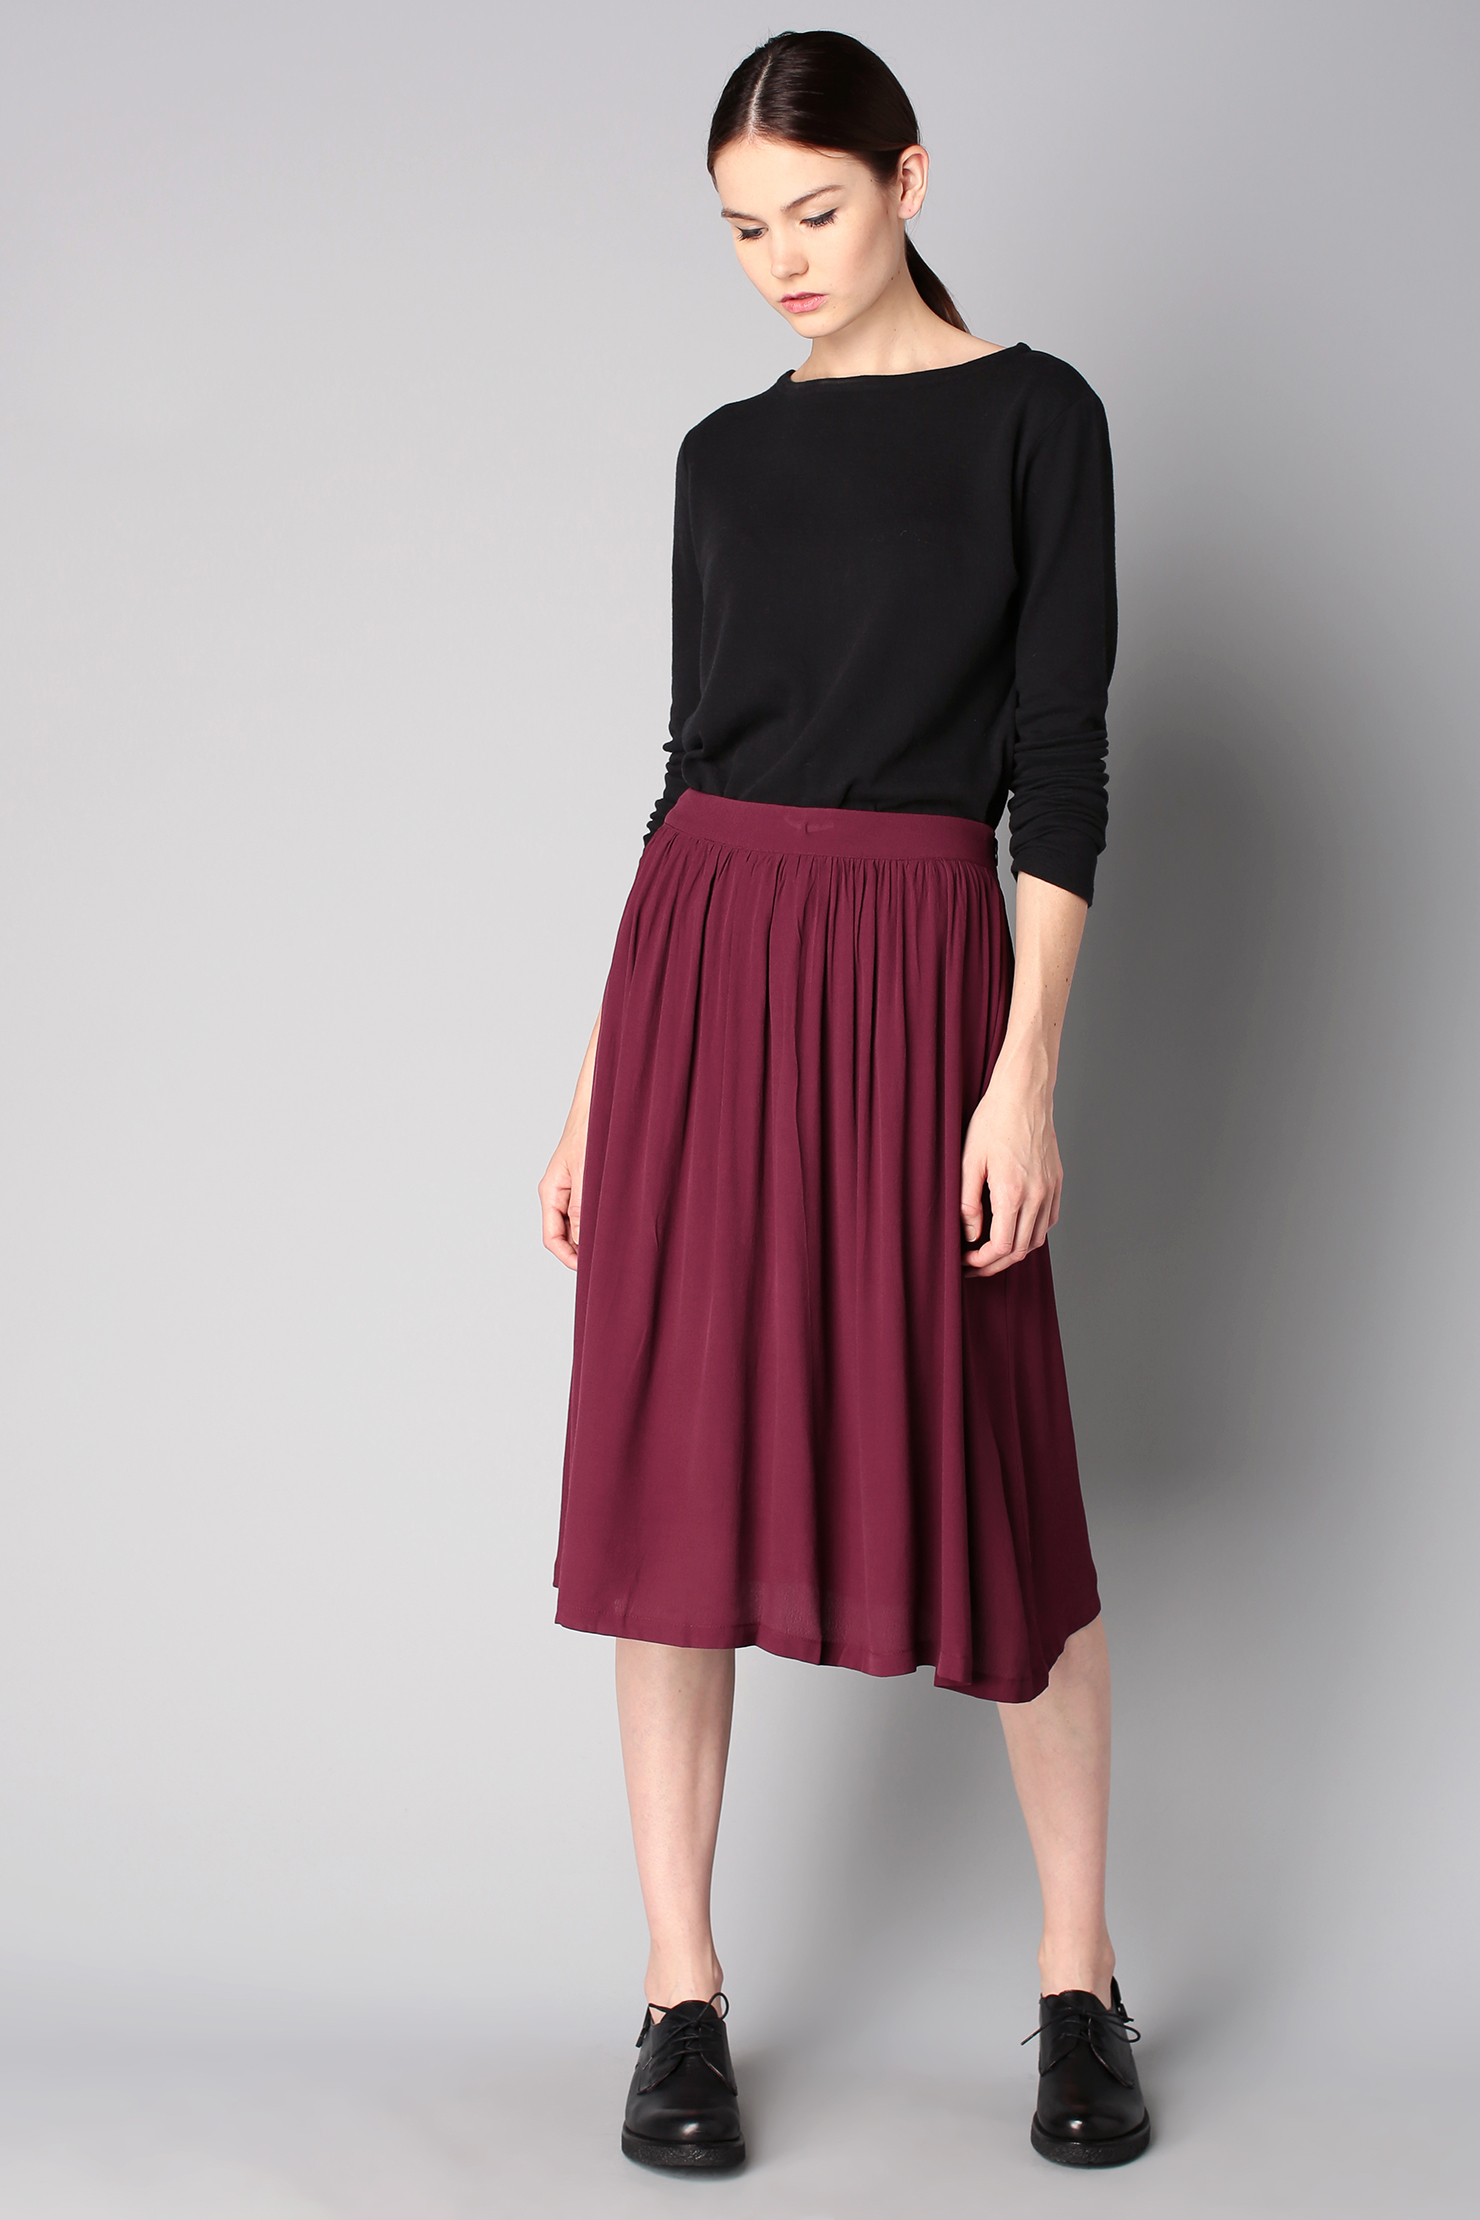 Women's Black Long Sleeve T-shirt, Burgundy Pleated Midi Skirt ...